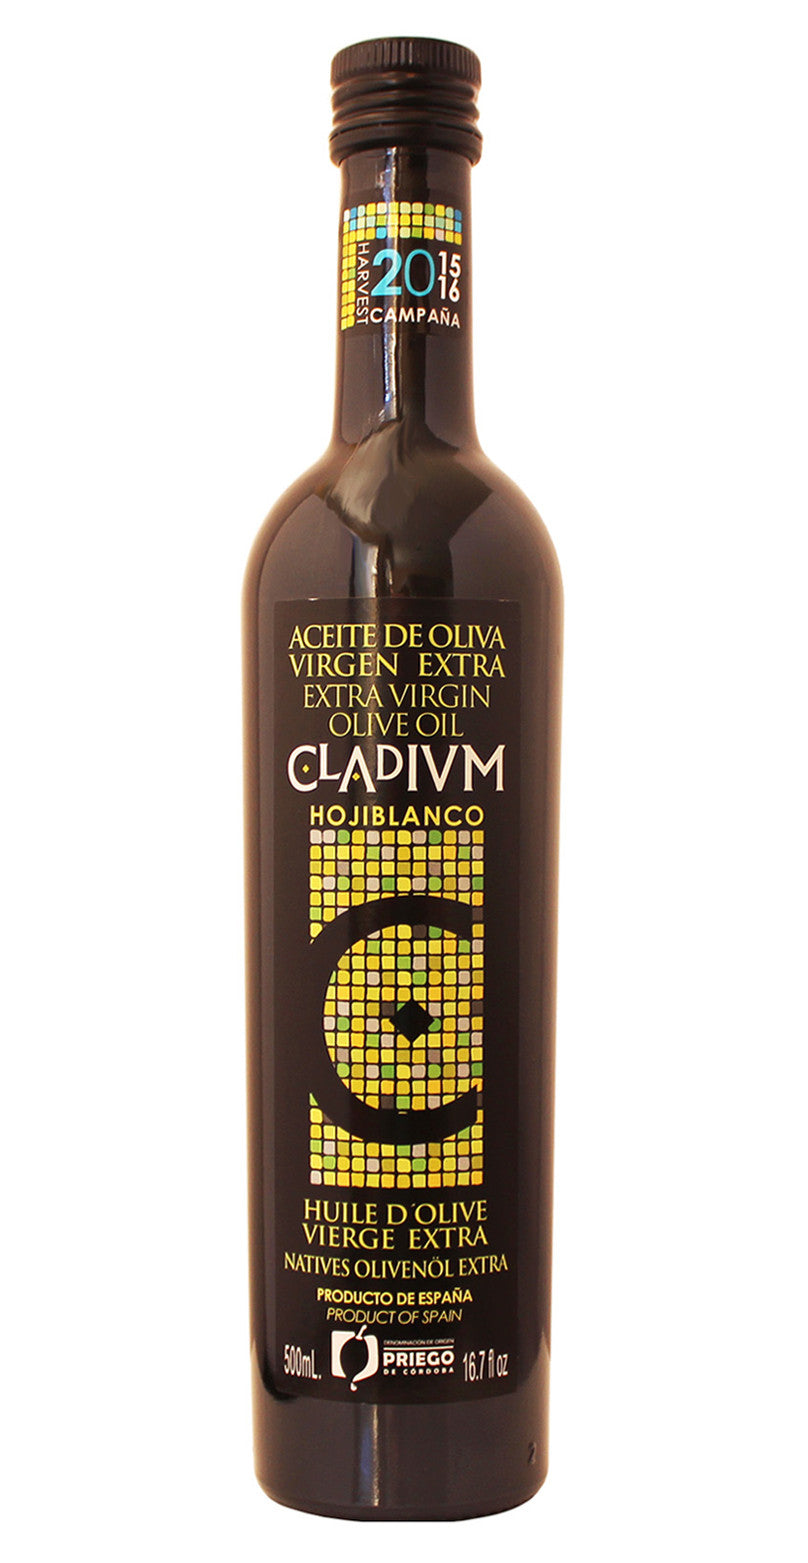 Special Selection -CLADIVM- Award Winning, Cold Pressed EVOO Extra Virgin Olive Oil, 2015-2016 Harvest, 17-Ounce glass Bottle